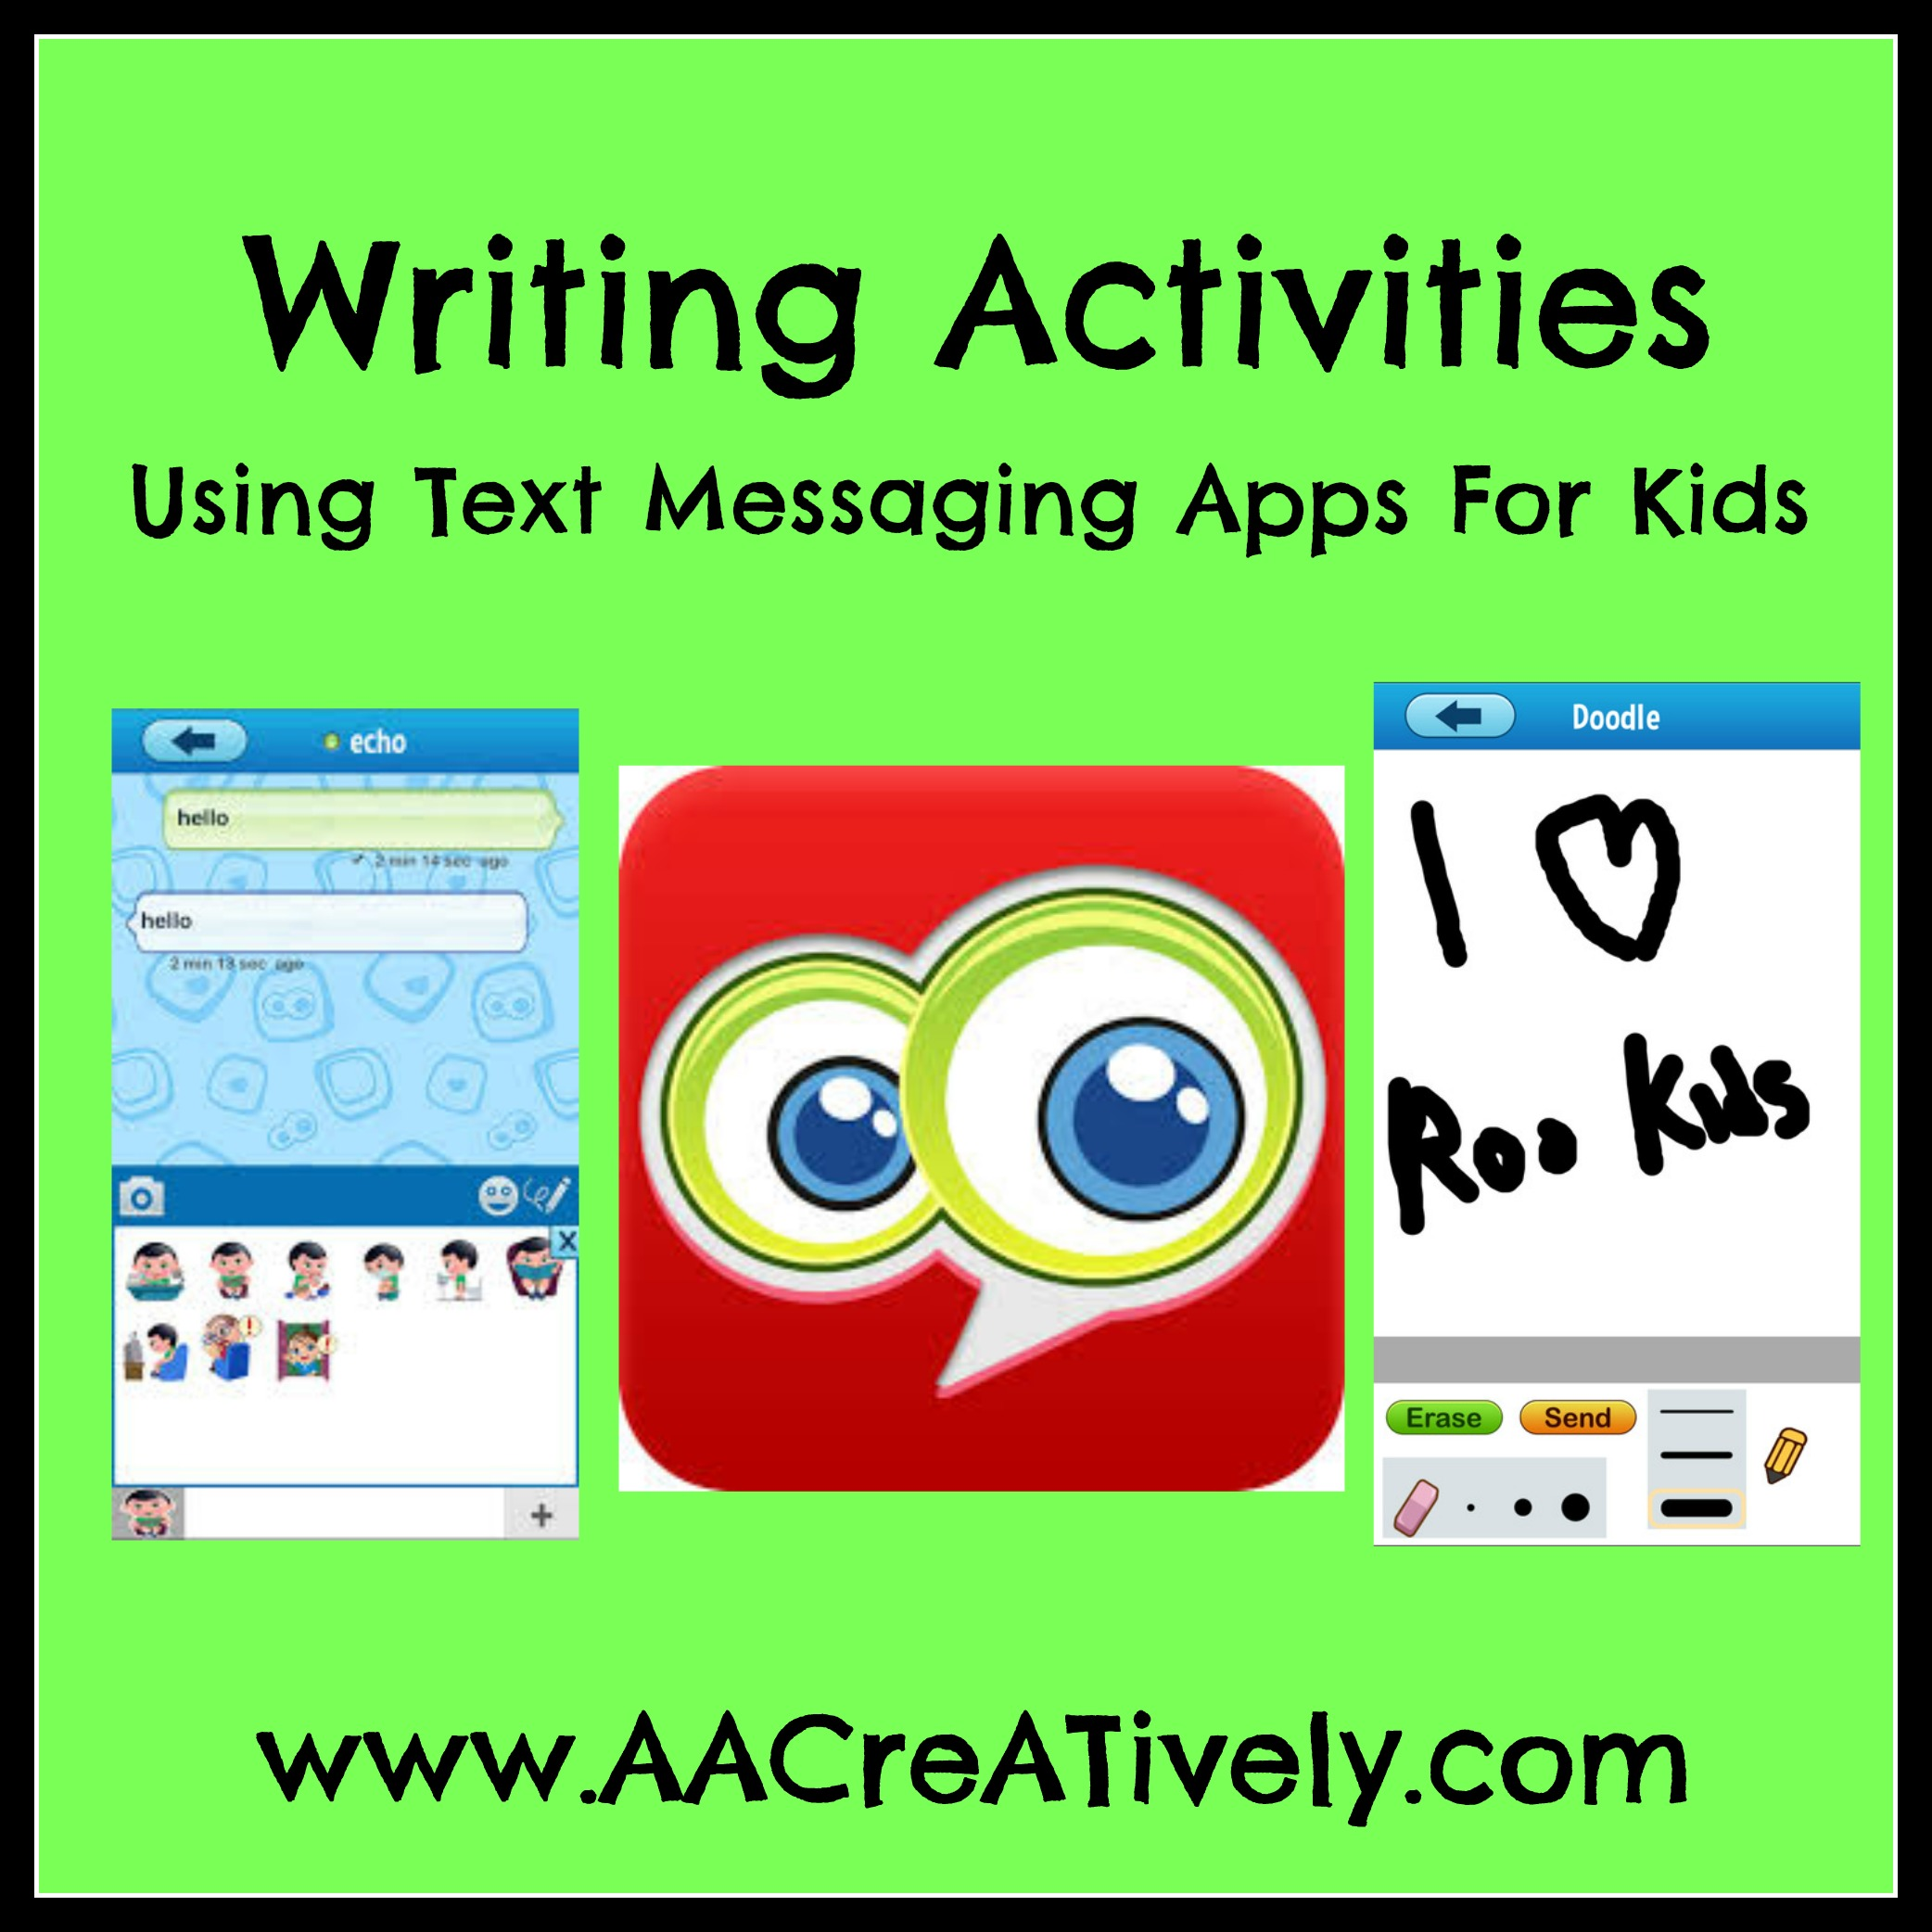 Writing Activities Using Instant Messaging Apps For Kids